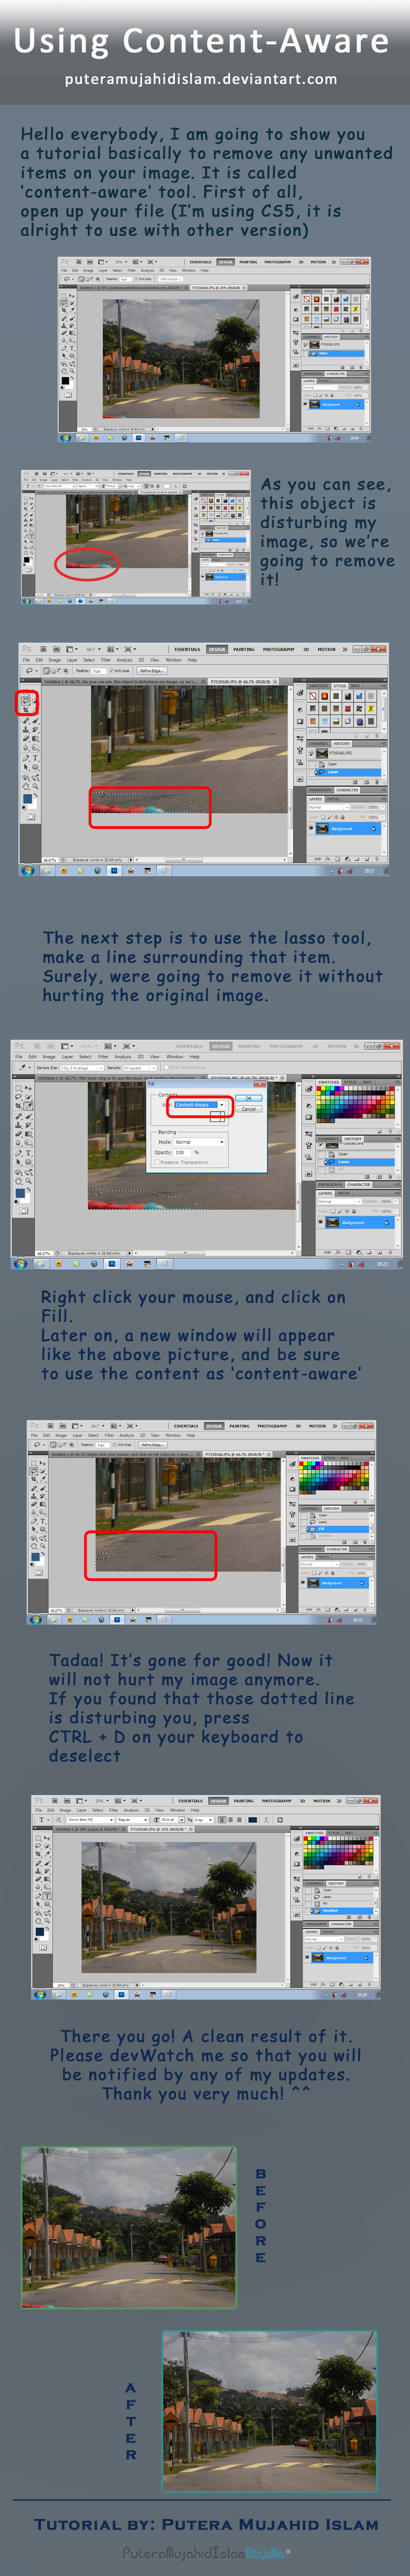 Adobe Photoshop Content-Aware Tutorial by PuteraMujahidIslam